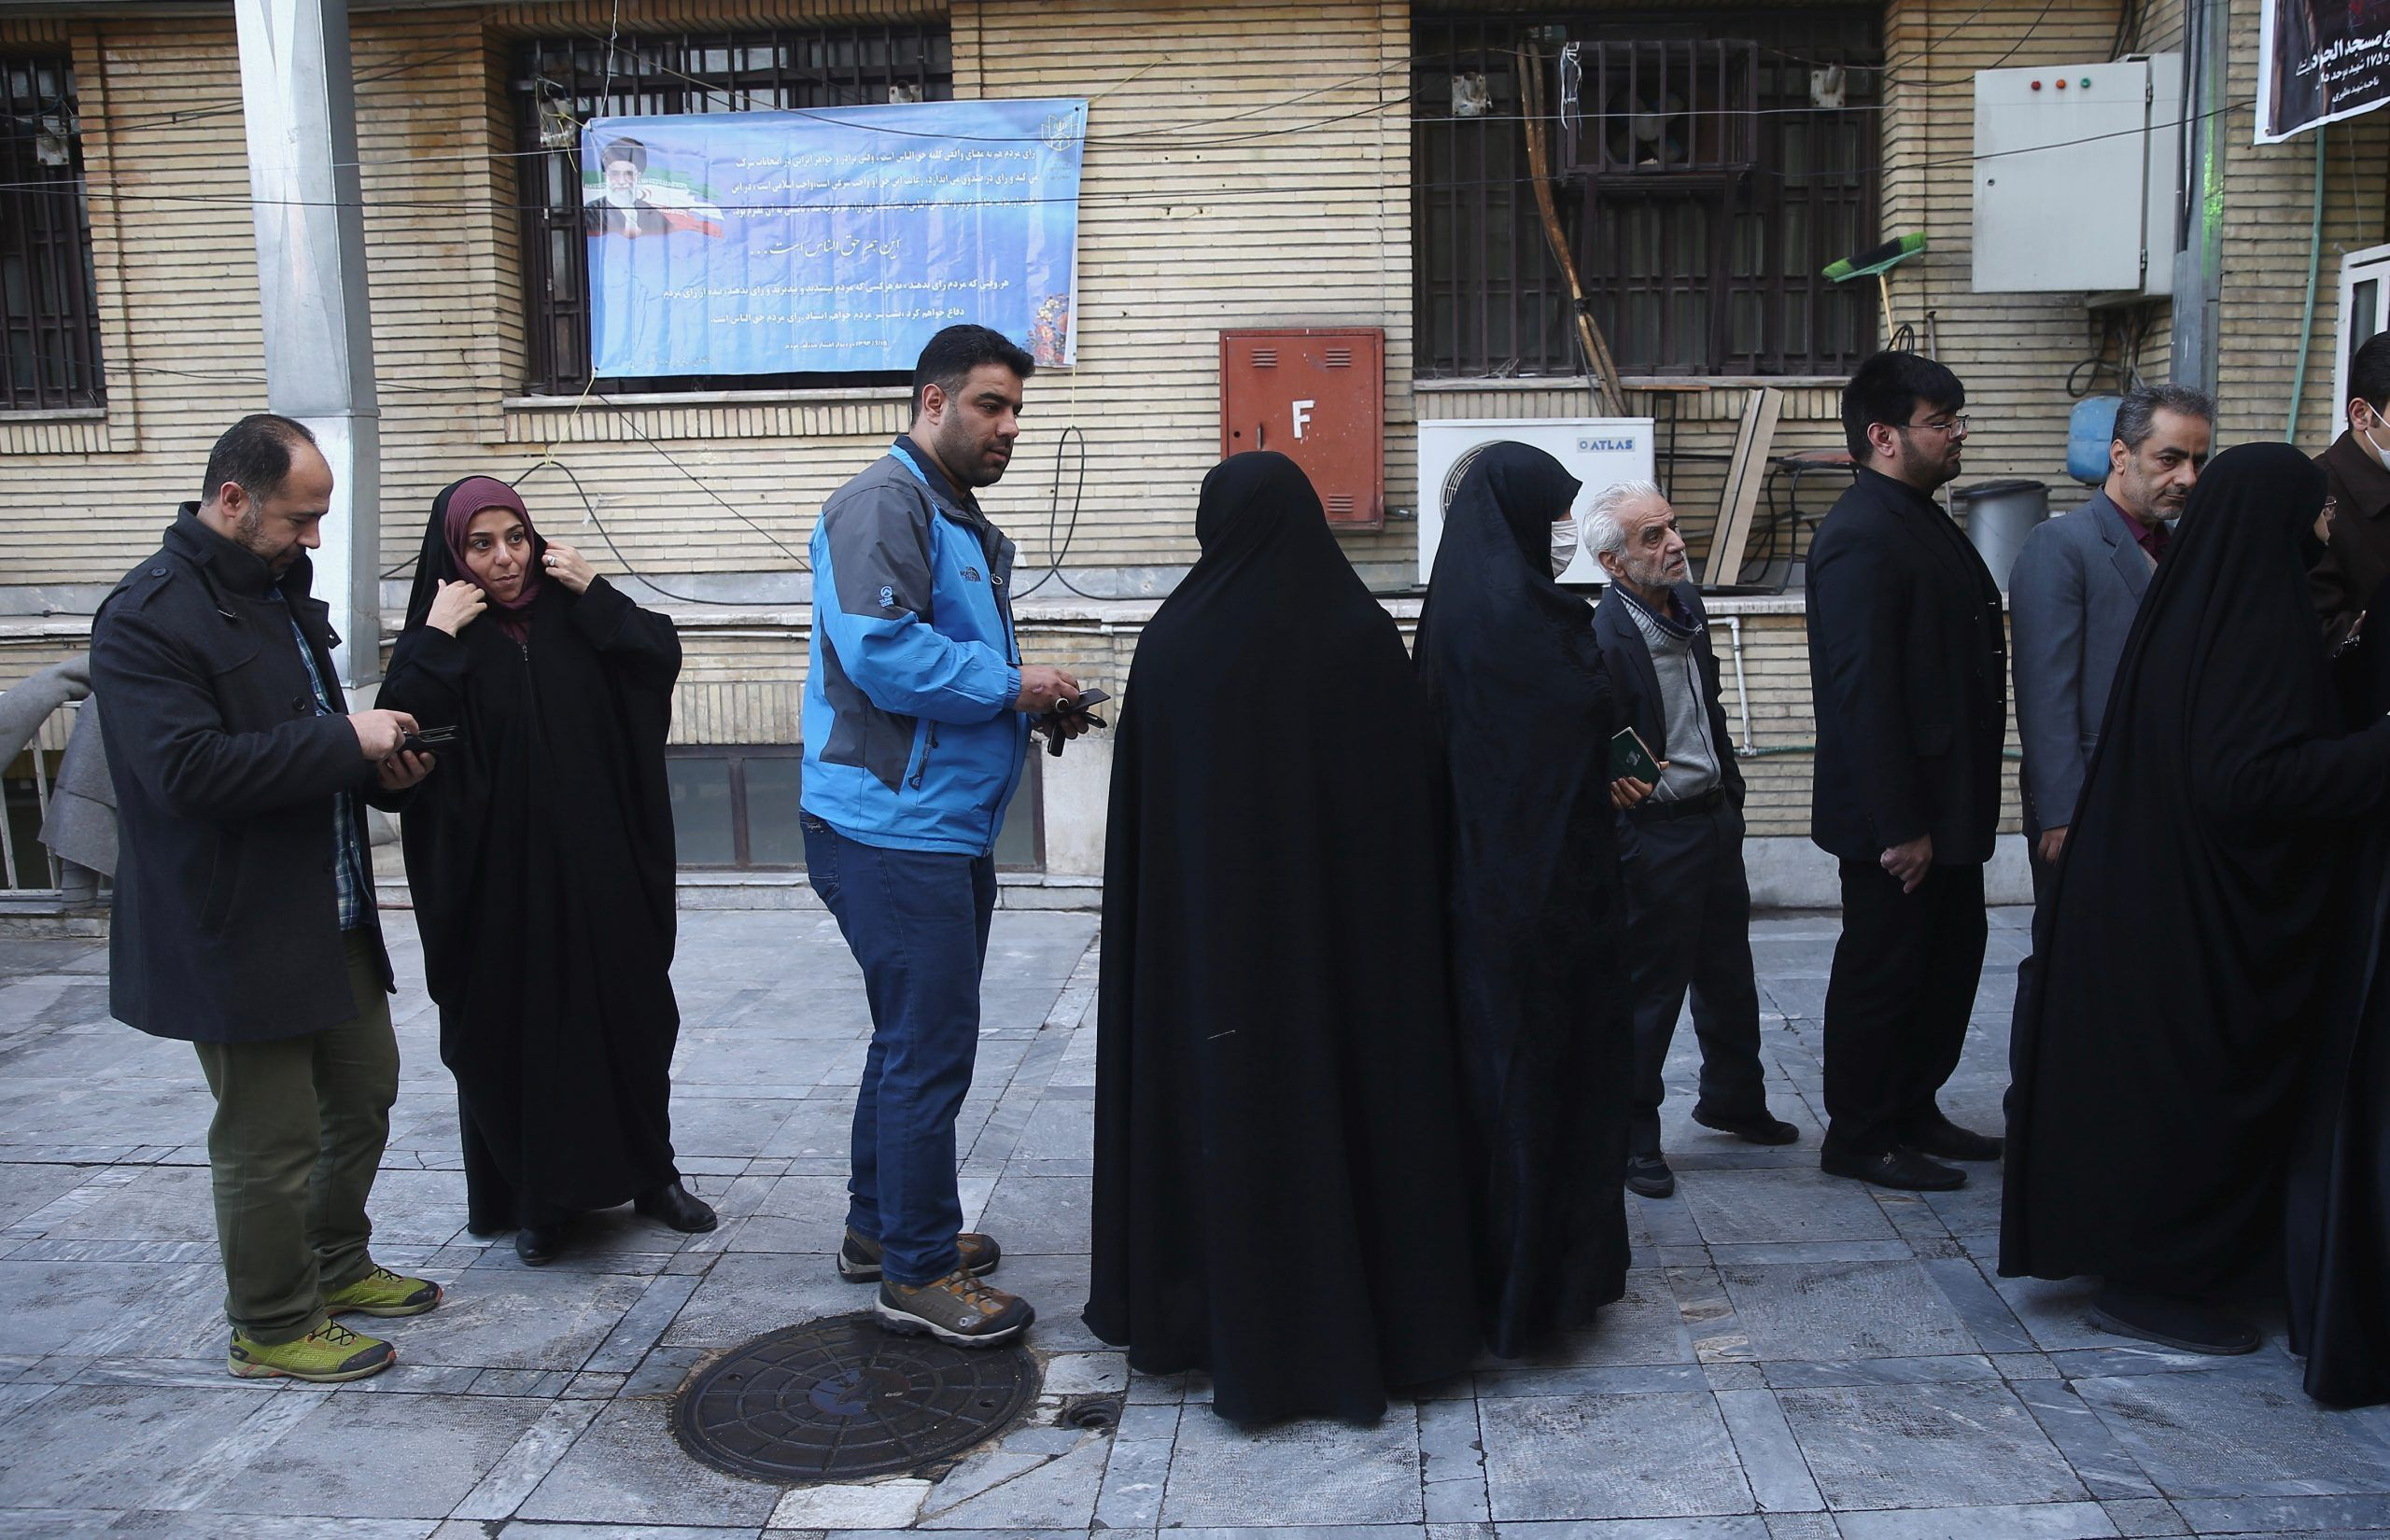 2020-02-21T051243Z_1953074531_RC2T4F9L1H4L_RTRMADP_3_IRAN-ELECTION-scaled